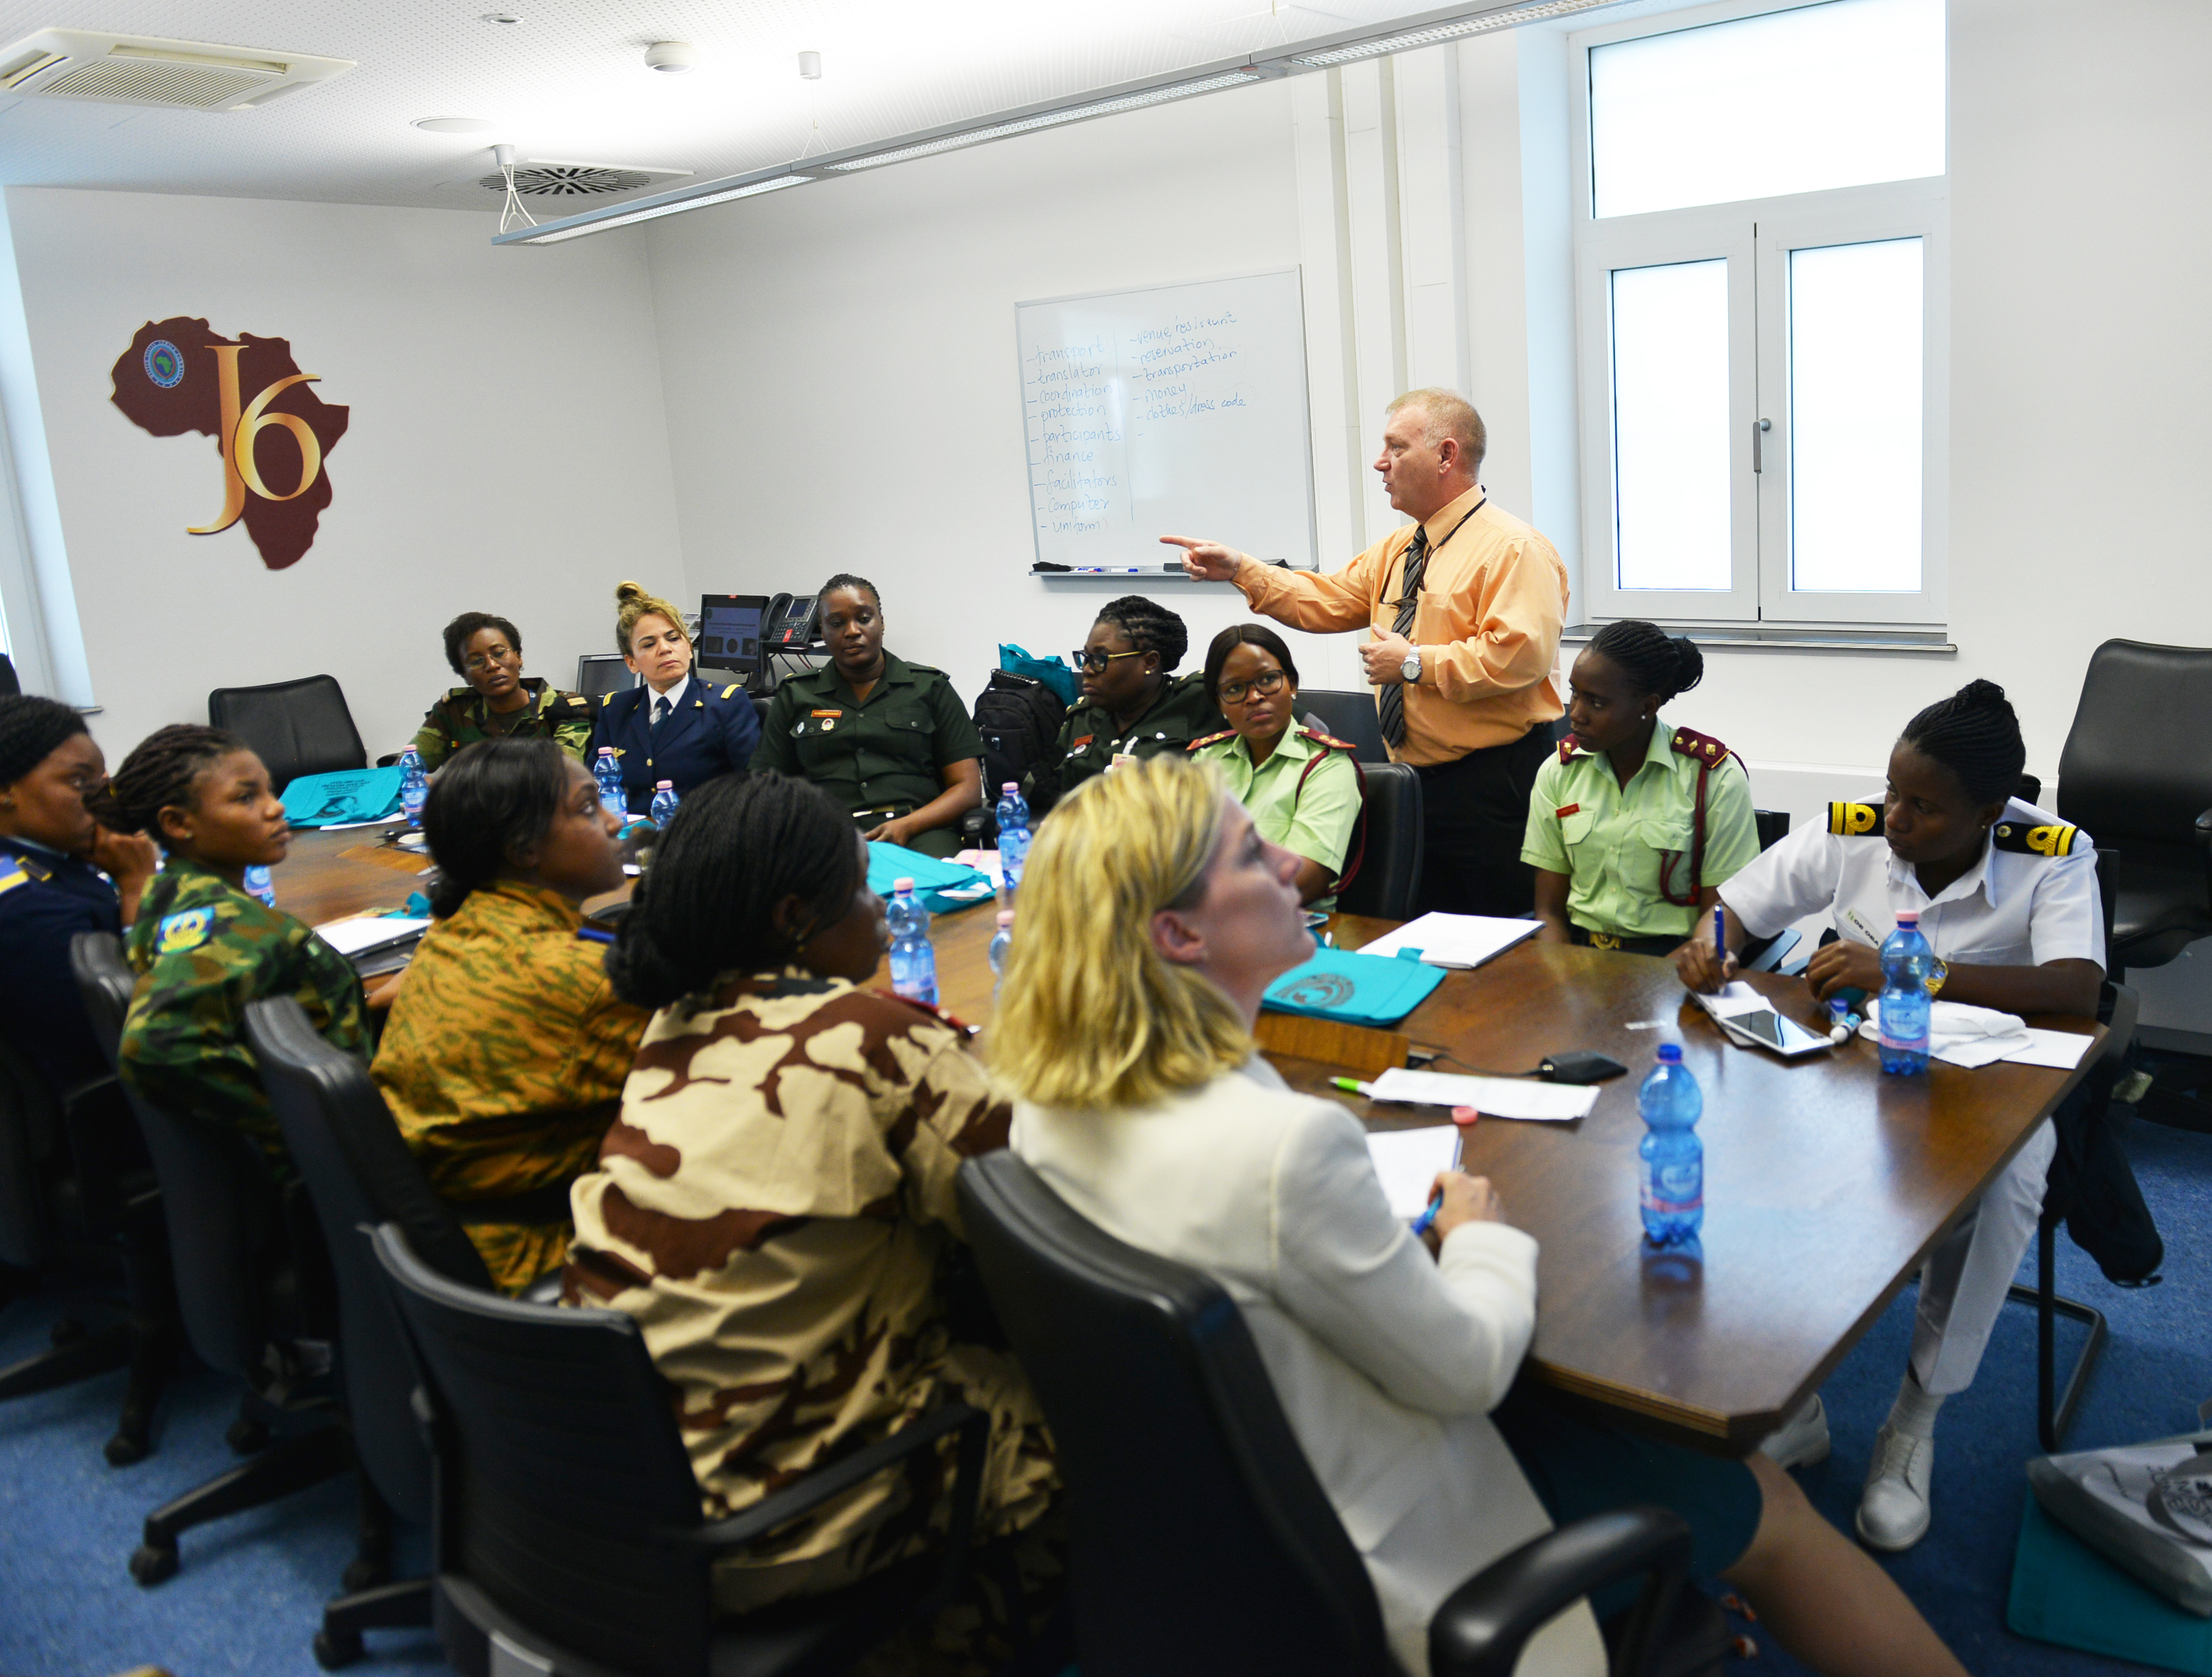 STUTTGART, Germany – Jonathan Trussell, Program Coordinator for the Equal Opportunity and Sexual Harassment and Assault Response Programs, U.S. Africa Command, speaks to attendees of the AFRICOM Women's Communication Symposium – 2018, at AFRICOM Headquarters, Kelly Barracks, June 25, 2018. The event hosted delegation of 14 women military signal communicators from African partner nations, under the command's Women's Military-to-Military Engagement Program. (Photo by Army Staff Sgt. Grady Jones, AFRICOM Public Affairs)